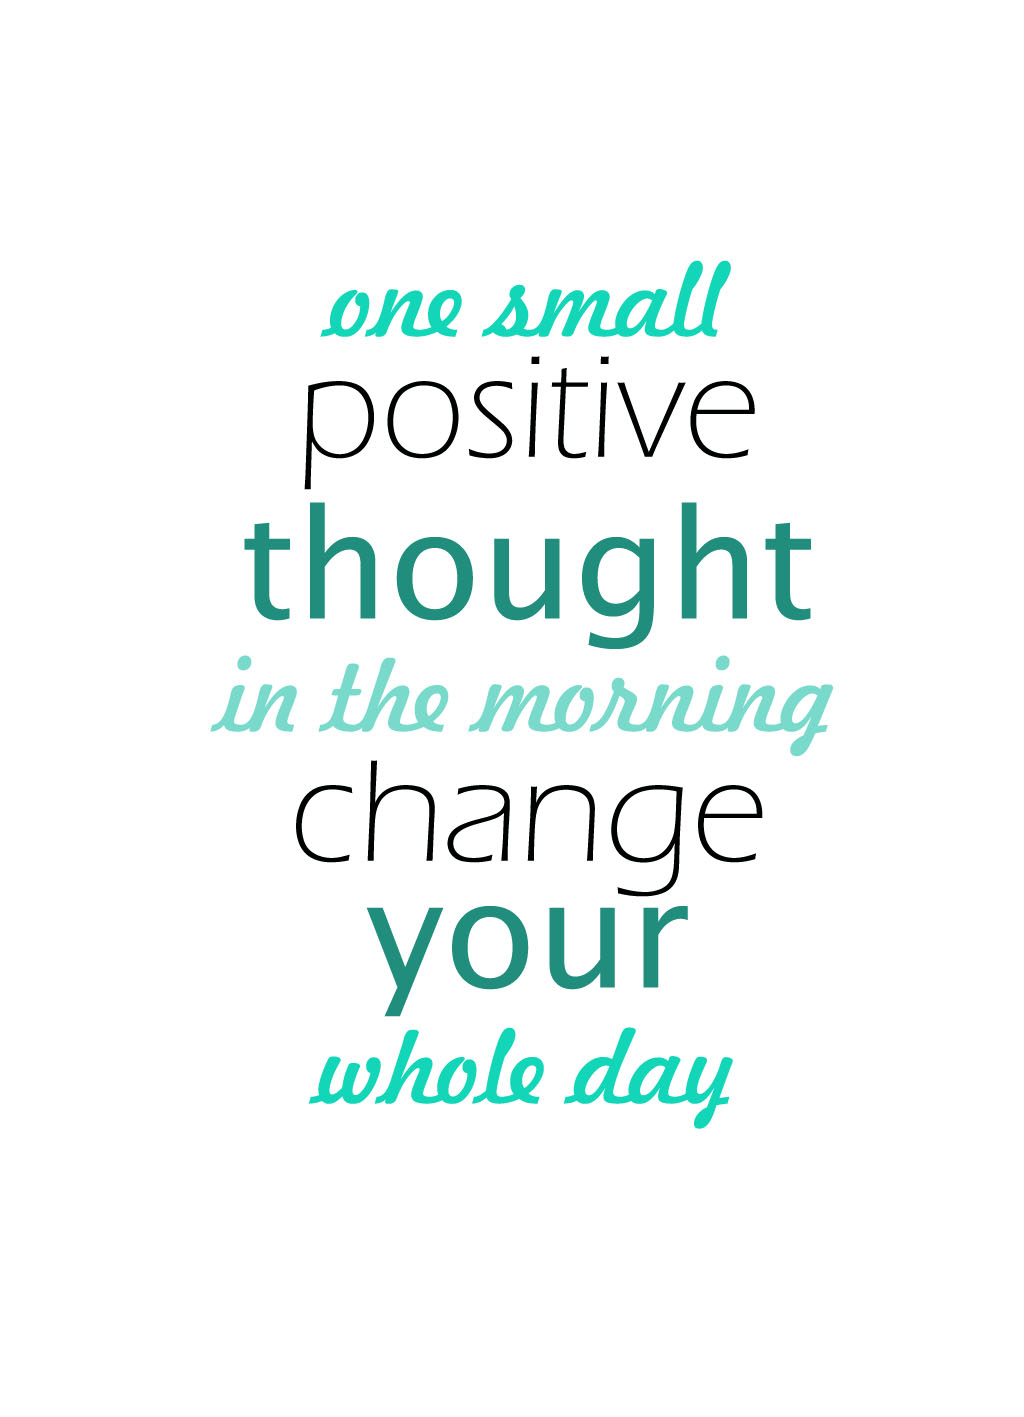 one small positive thought in the morning change your whole day